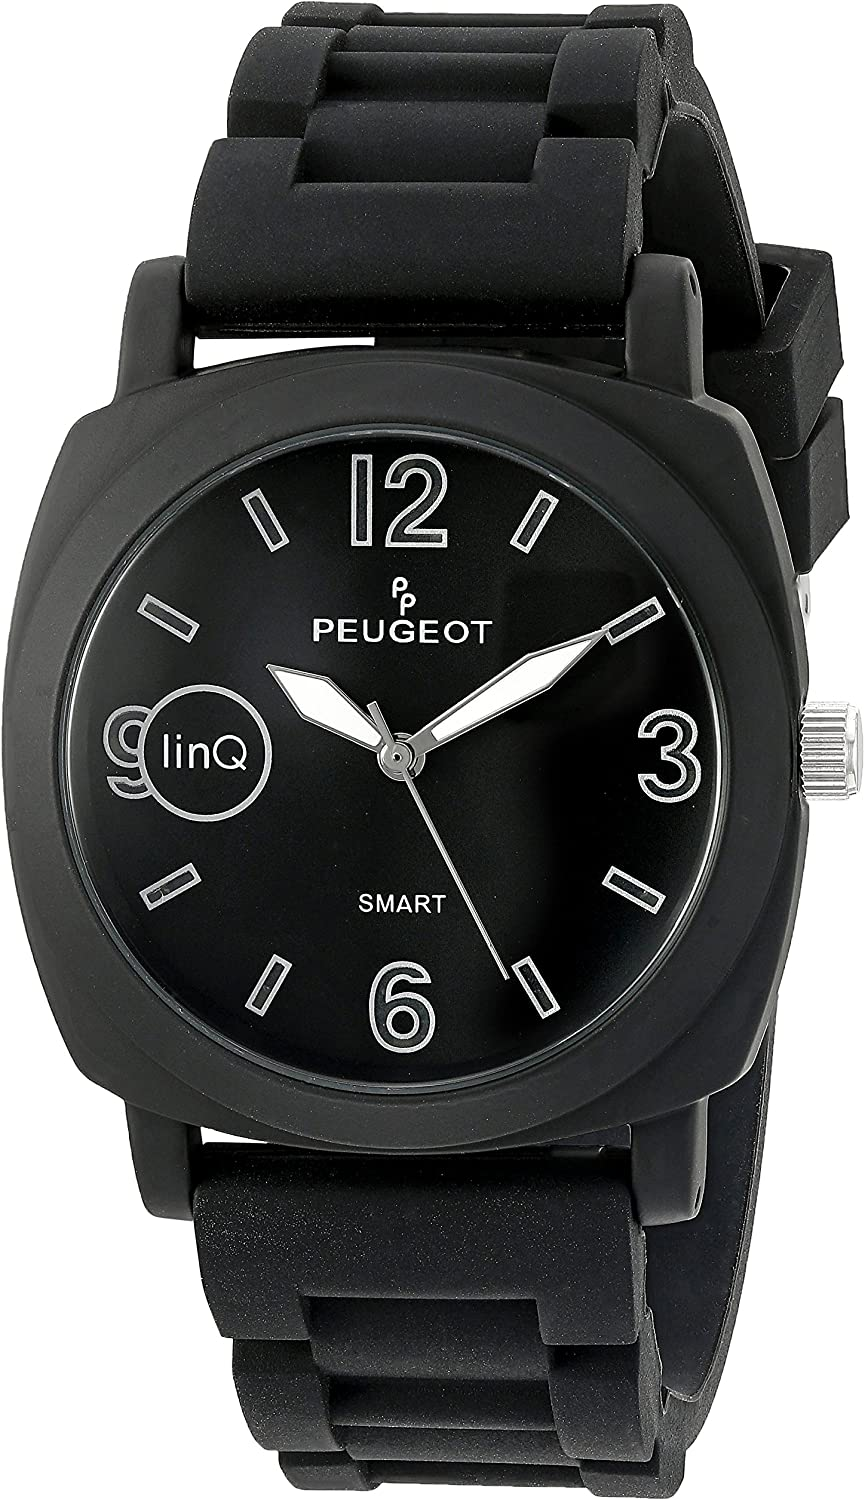 Peugeot linQ Stainless Steel Bluetooth Smart Connected to Mobile Phone Black Leather Dress Watch